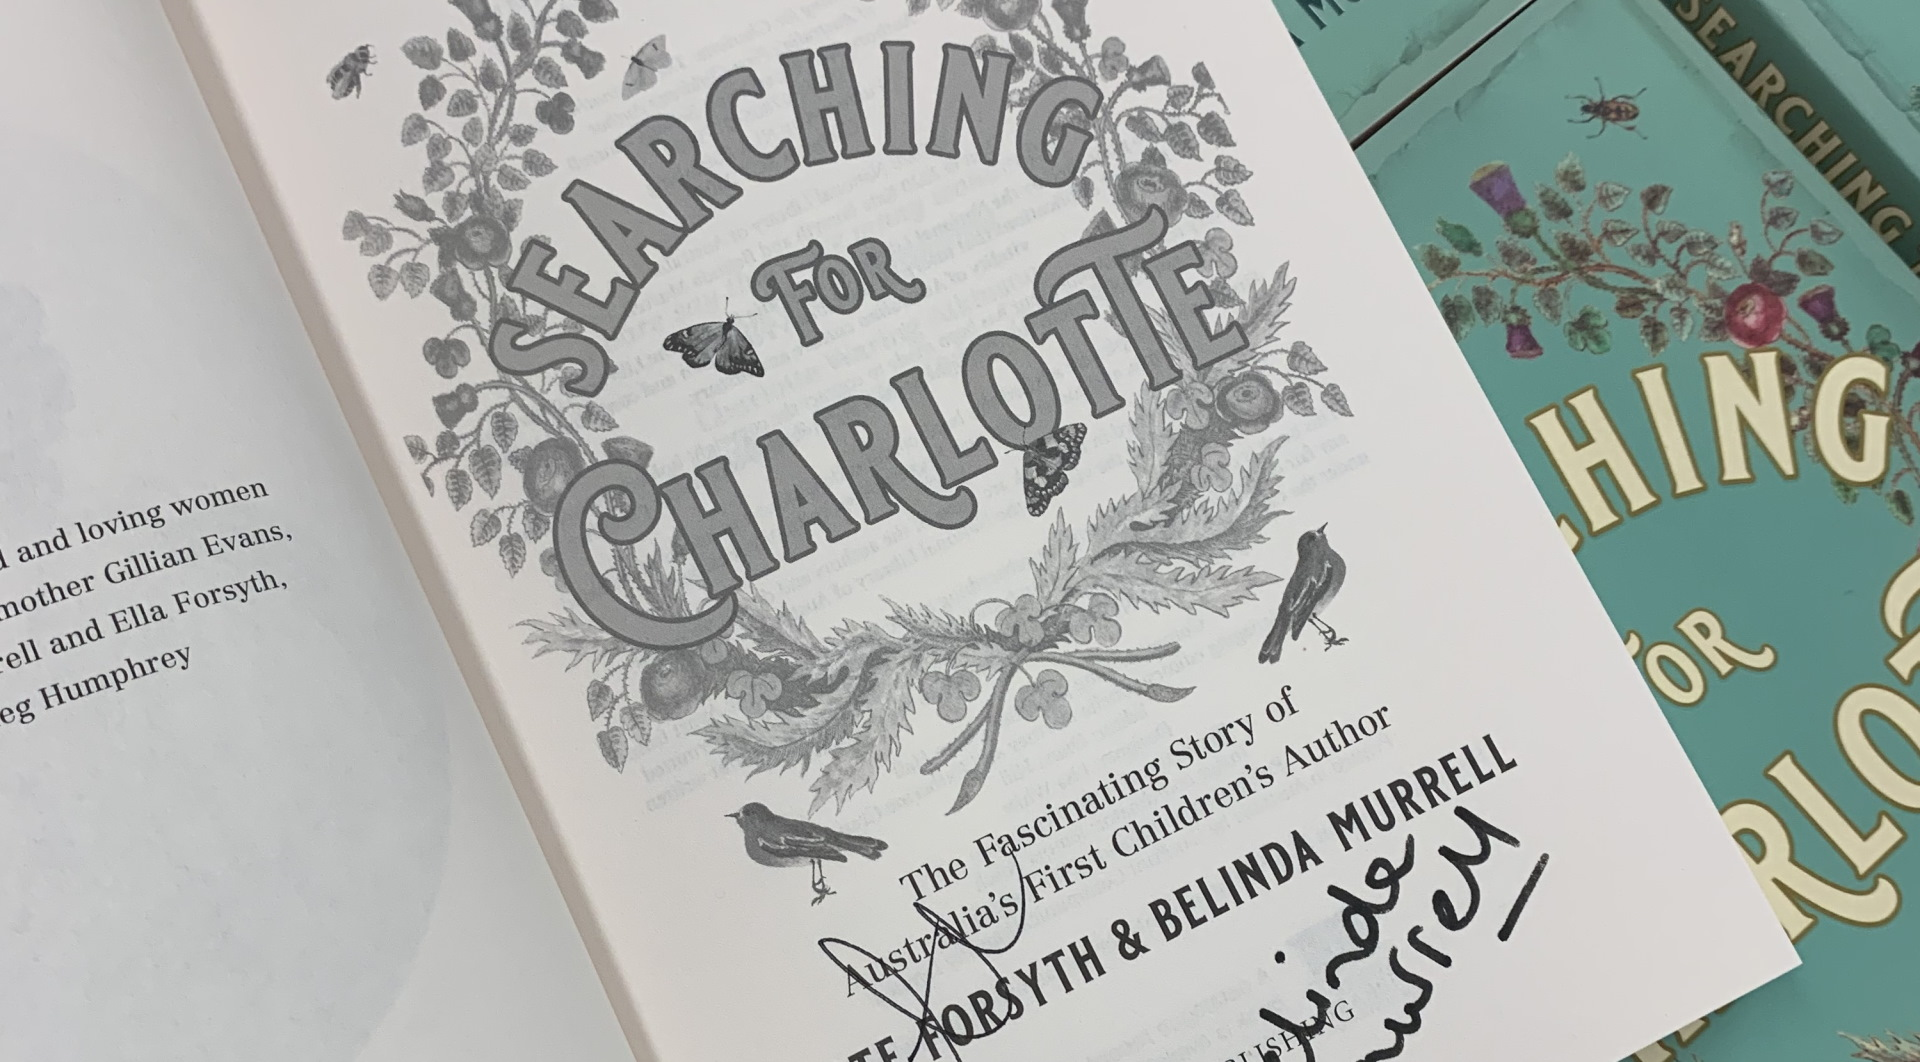 Inside front page of new NLA Publishing book Searching for Charlotte with author signatures